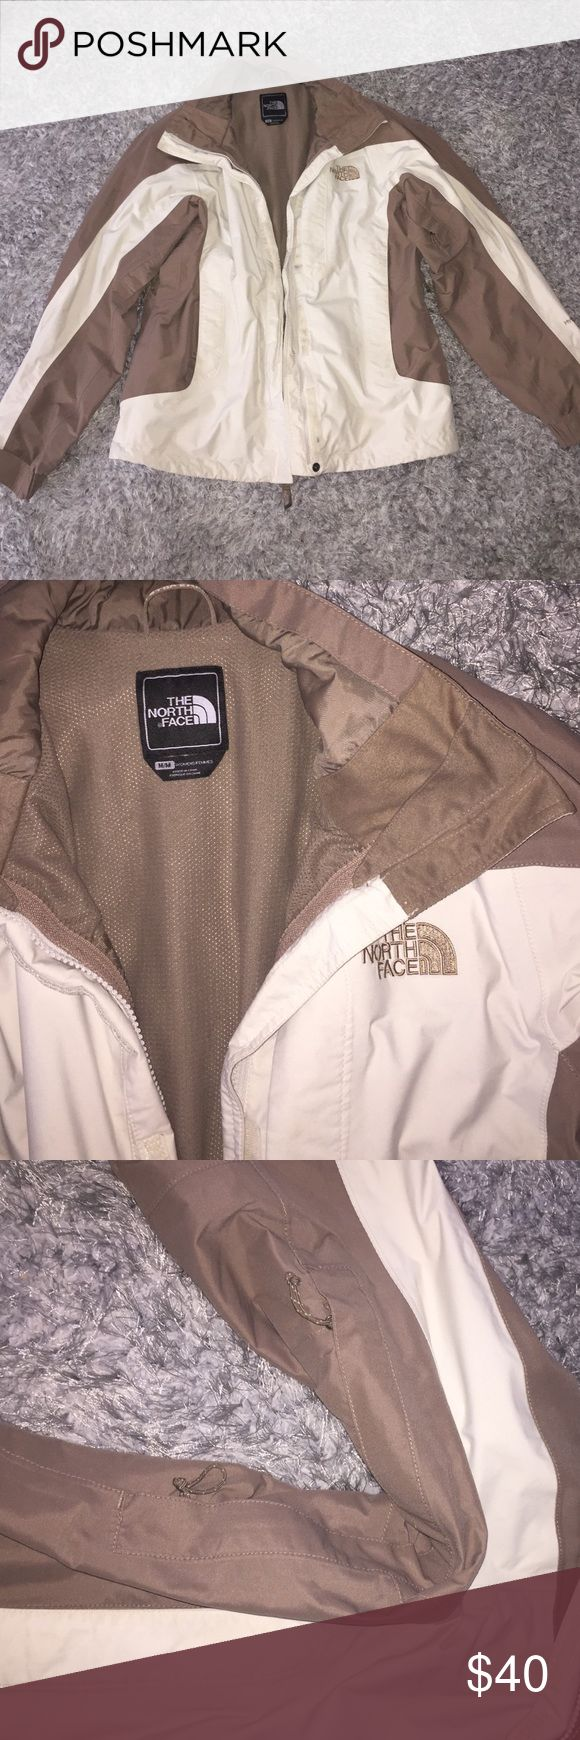 North face jacket Brown and white north face jacket North Face Jackets & Coats